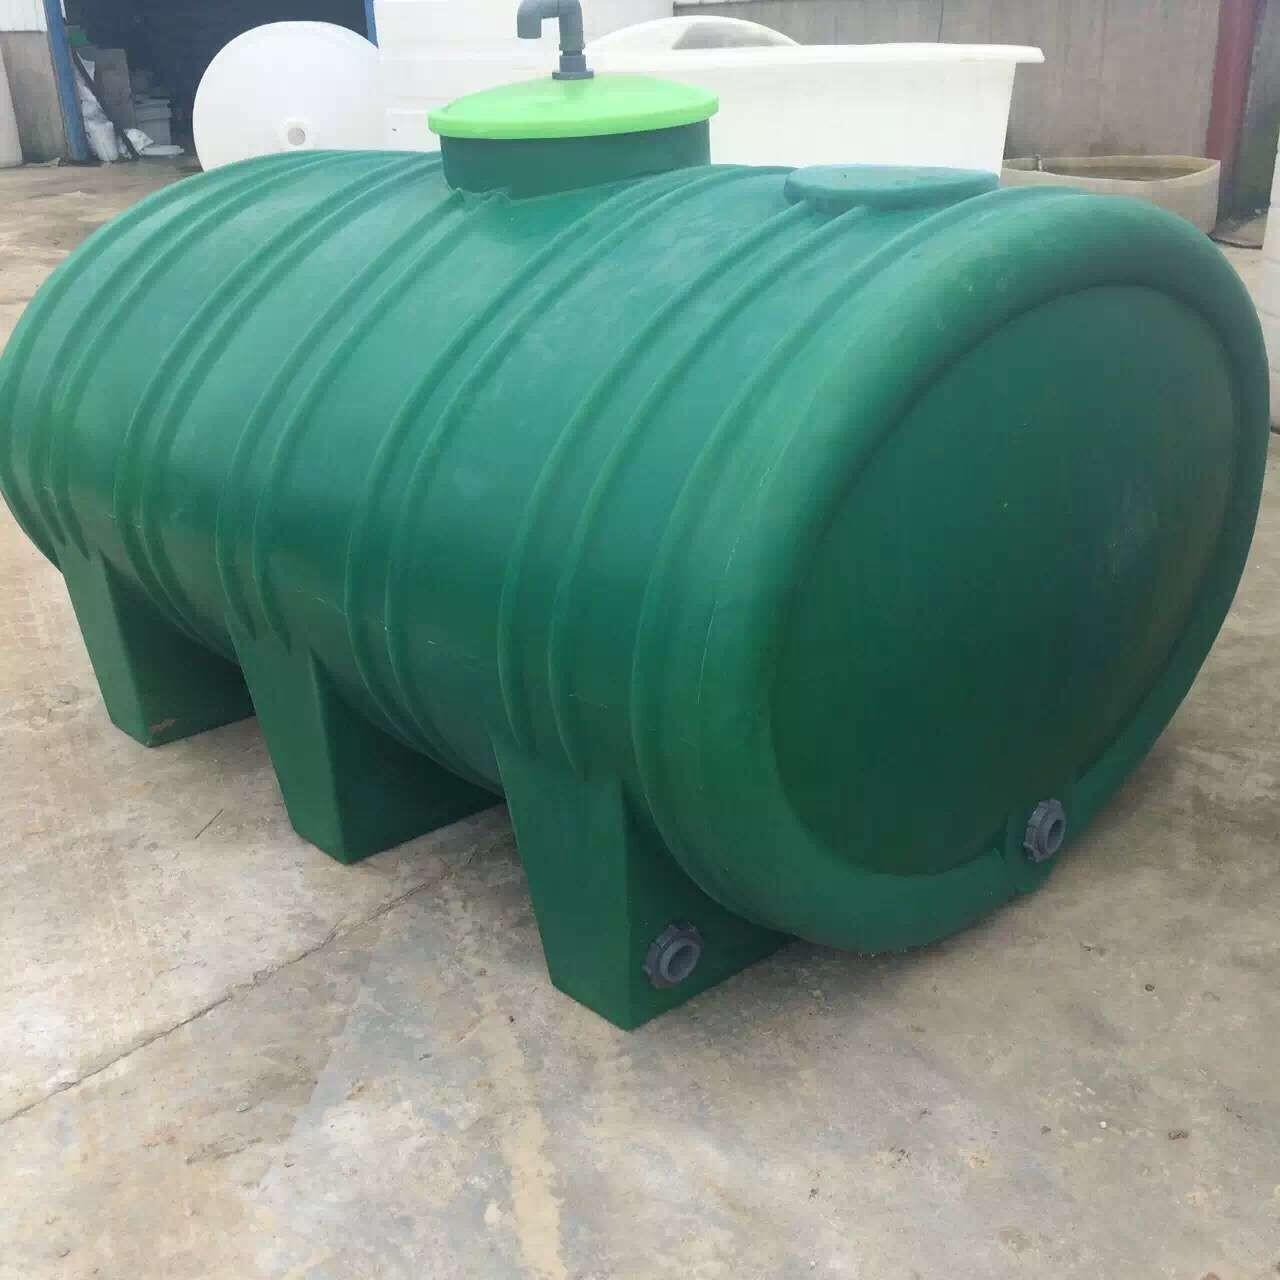 China 2000 litre Plastic horizontal tank pe tank malaysia in other plastic building materials on sale